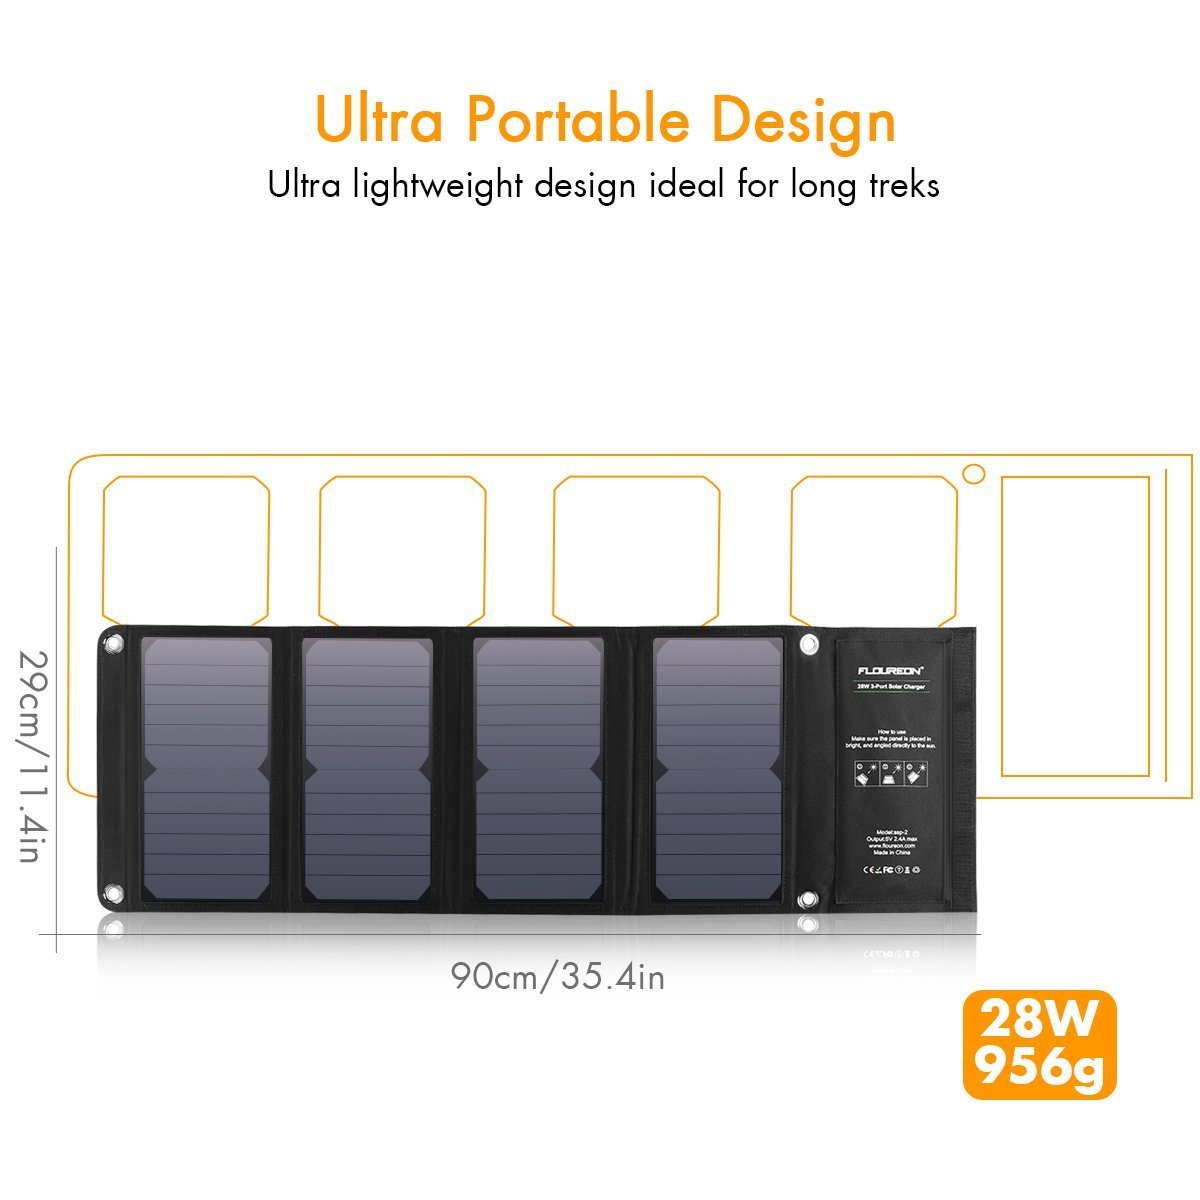 FLOUREON 28W Solar Panel SunPower Camping Solar Charger Foldable Waterproof Solar Panel with Triple USB Ports/7.2A Output Charging for iPhone 8/8 Plus/X/ 7/ 6s, Samsung Galaxy S8/ S7/ S6 and More